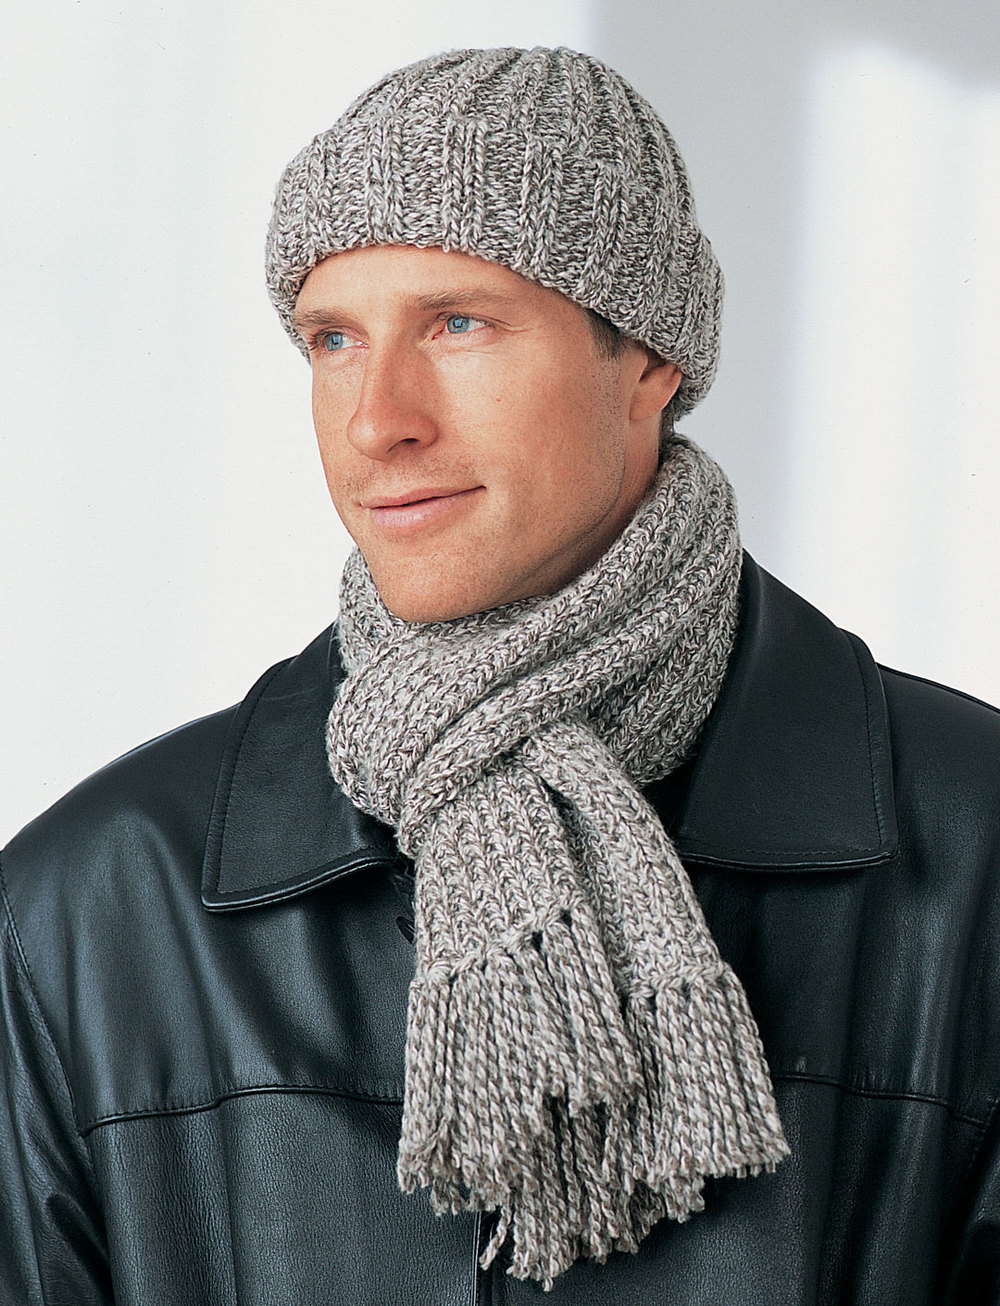 Knitted Beanie Patterns New Decorating Ideas